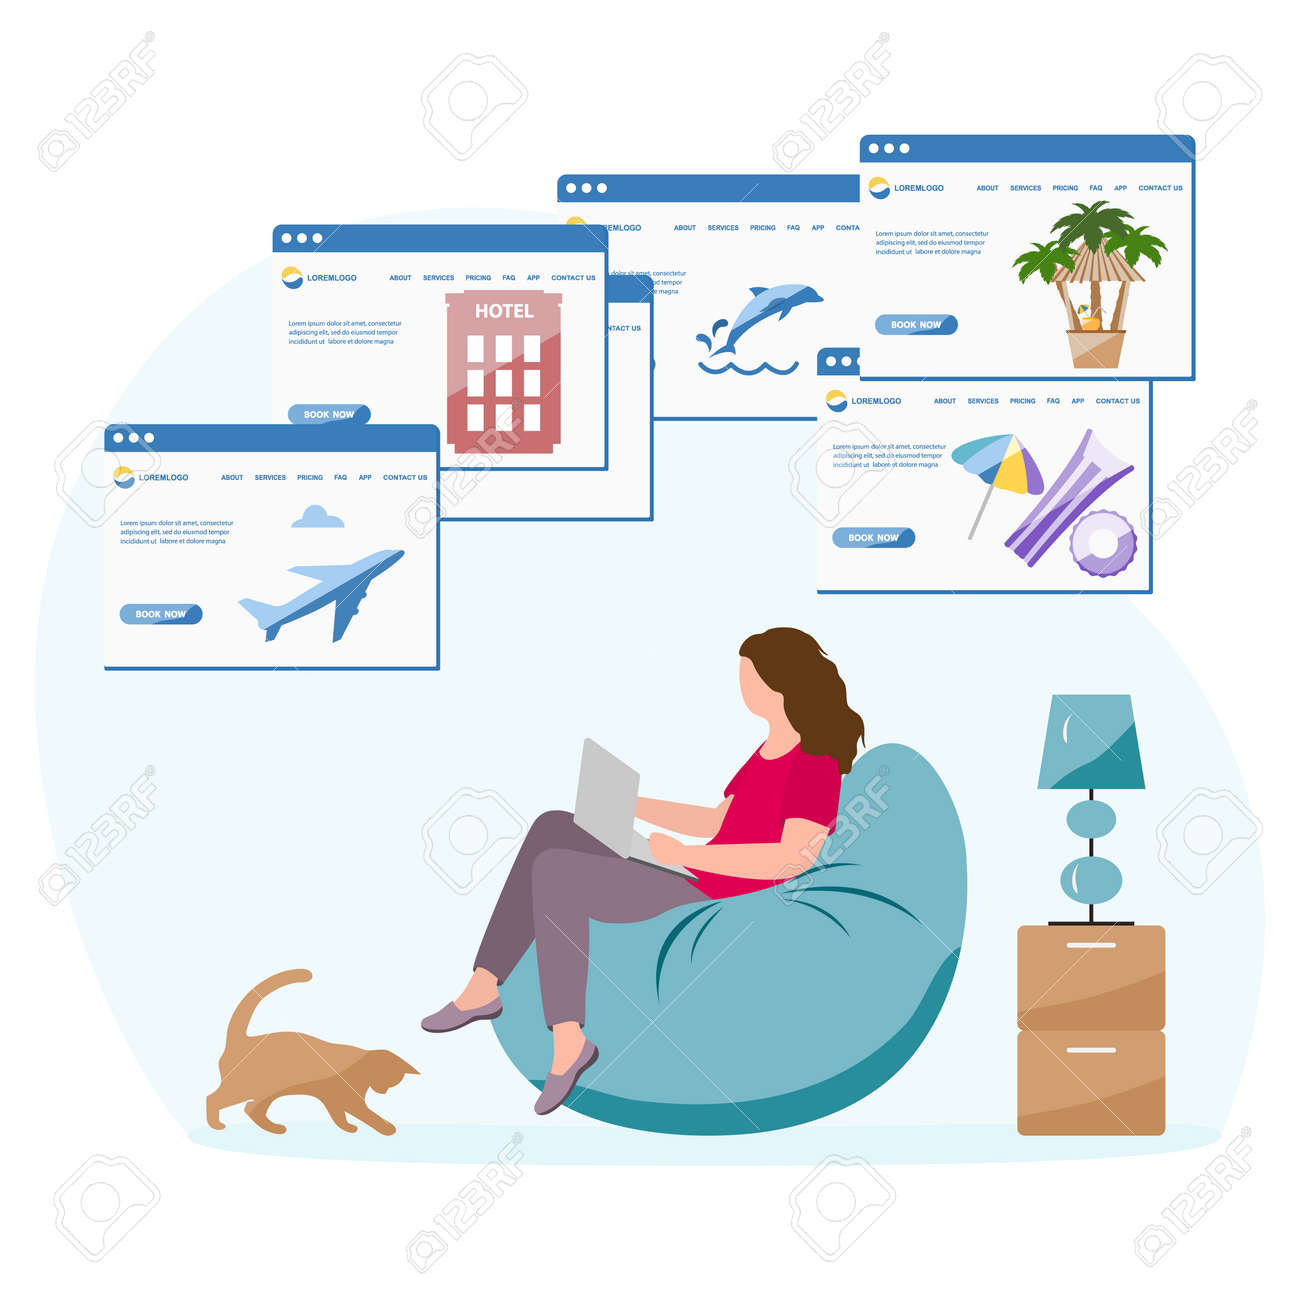 Vector illustration People book vacation on laptop. Travel or journey planning. Plan holiday route. Online concept. Internet e-commerce, travel technology. Resort. Tourism. Design for website, print - 170255054